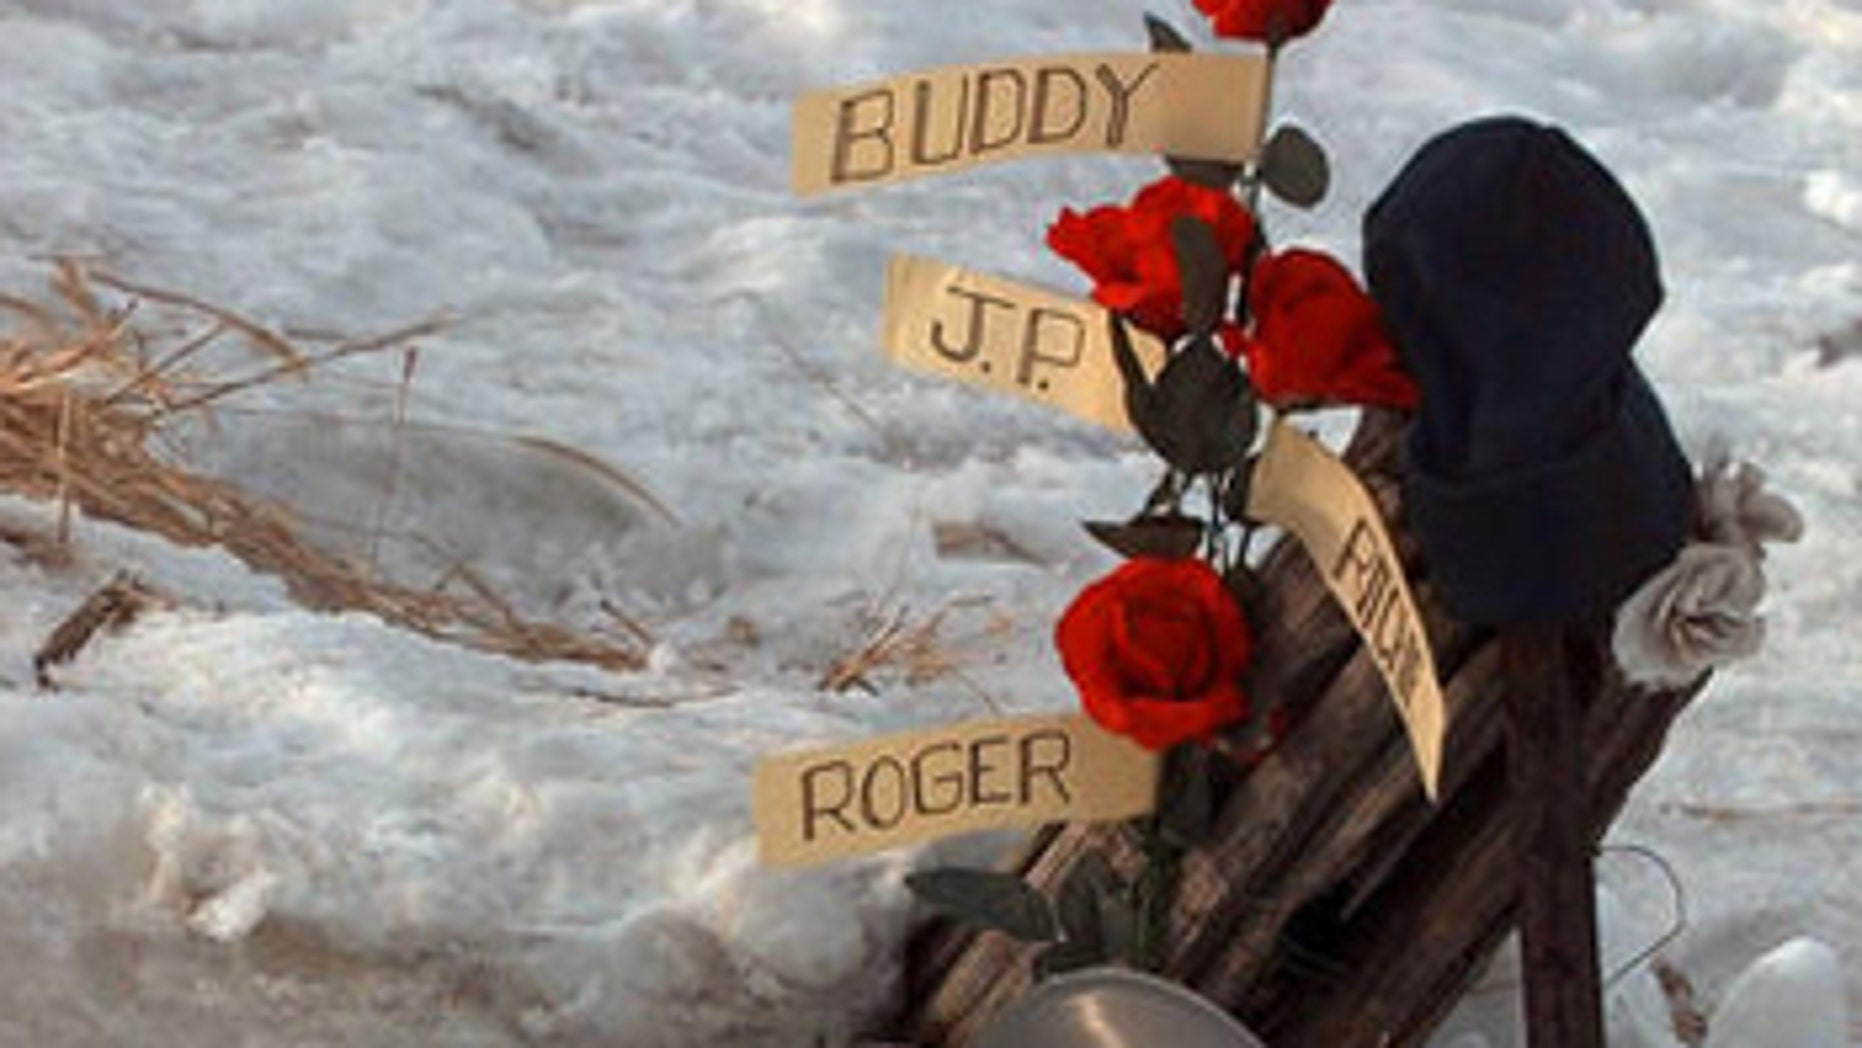 """**FILE** Flowers adourn a memorial Feb. 6, 1999, at the spot where the plane carrying Buddy Holly, Ritchie Valens, J.P. """"The Big Bopper"""" Richardson and their pilot Roger Peterson crashed, killing all aboard Feb. 3, 1959, near Clear Lake, Iowa. The son of """"The Big Bopper,"""" Jay Richardson, has hired a forensic anthropologist to answer questions about how his father died in the 1959 plane crash along with rock 'n' rollers Holly and Valens. (AP Photo/Rodney White, File)"""